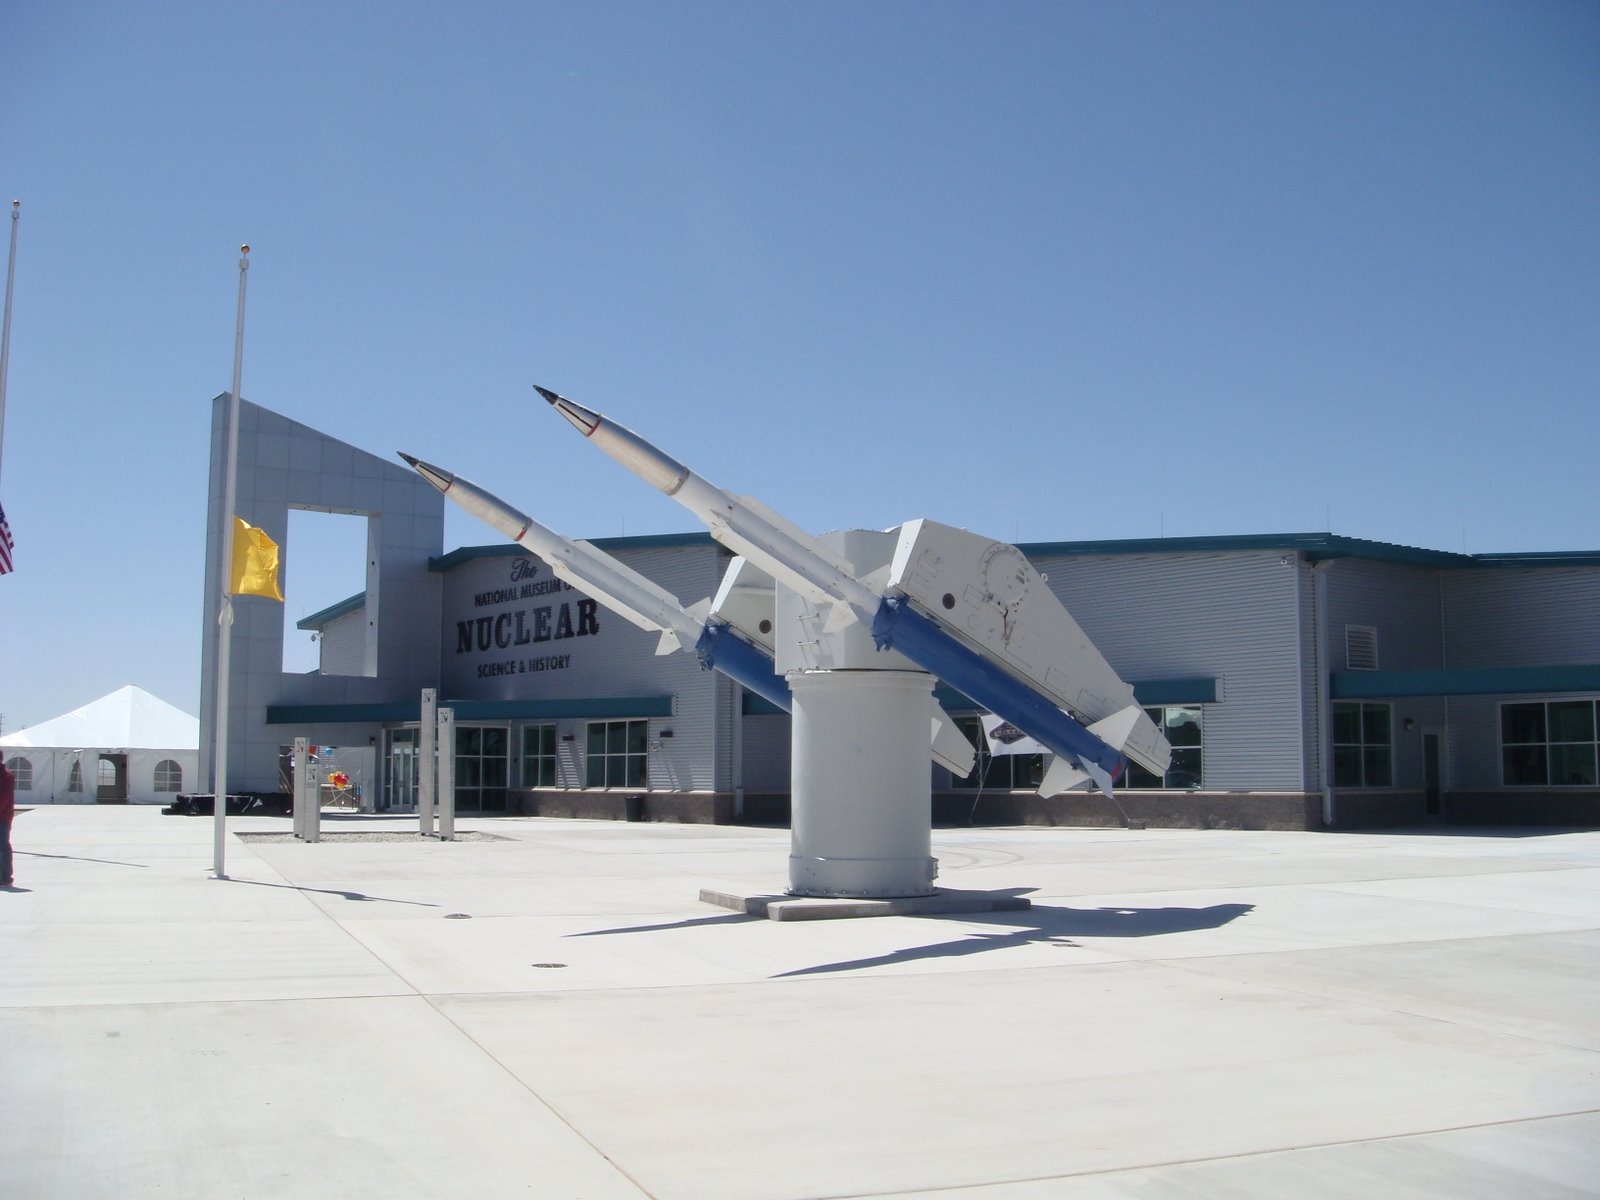 The National Museum of Nuclear History and Science